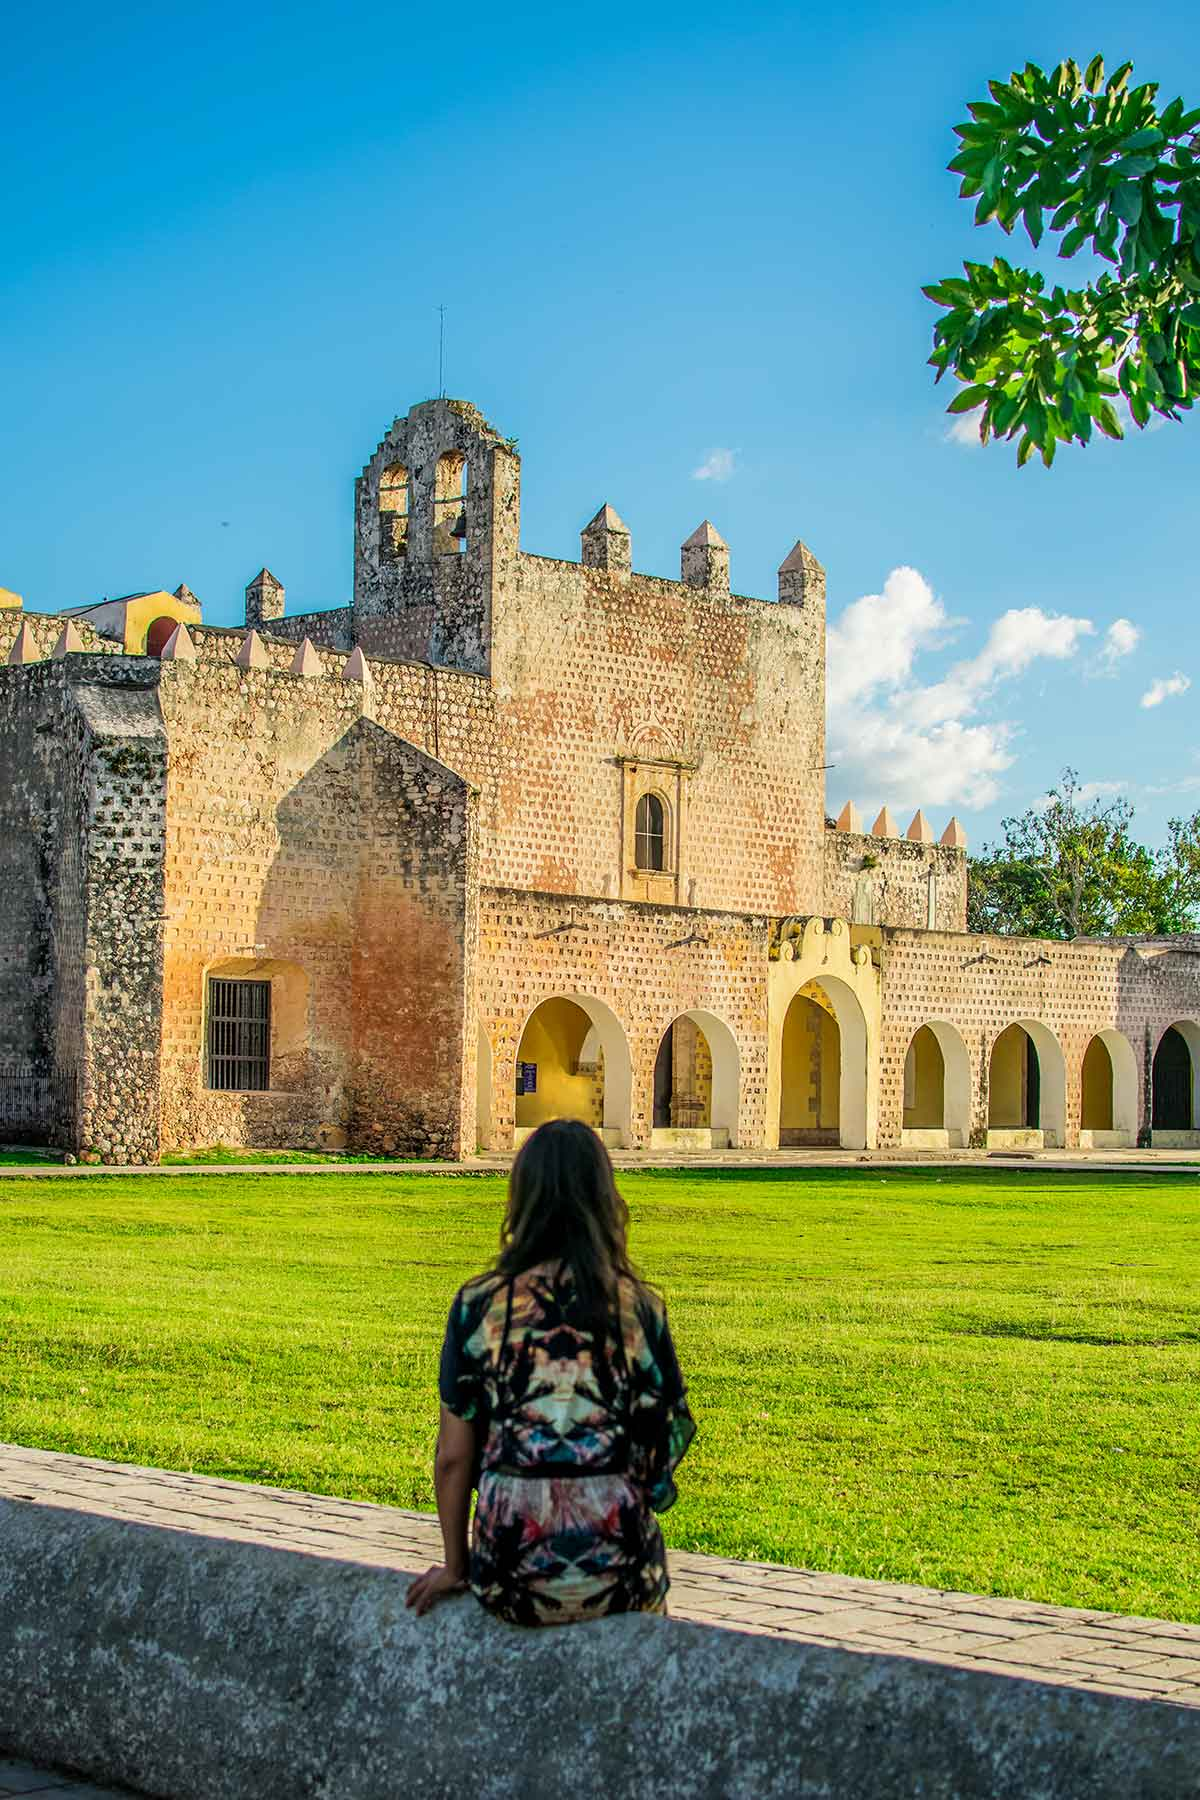 20 EPIC Valladolid Instagram spots for travelling Mexico. A woman sits in front of the Image result for Bernardino Of Siena valladolid Ex Convent of San Bernardino de Siena